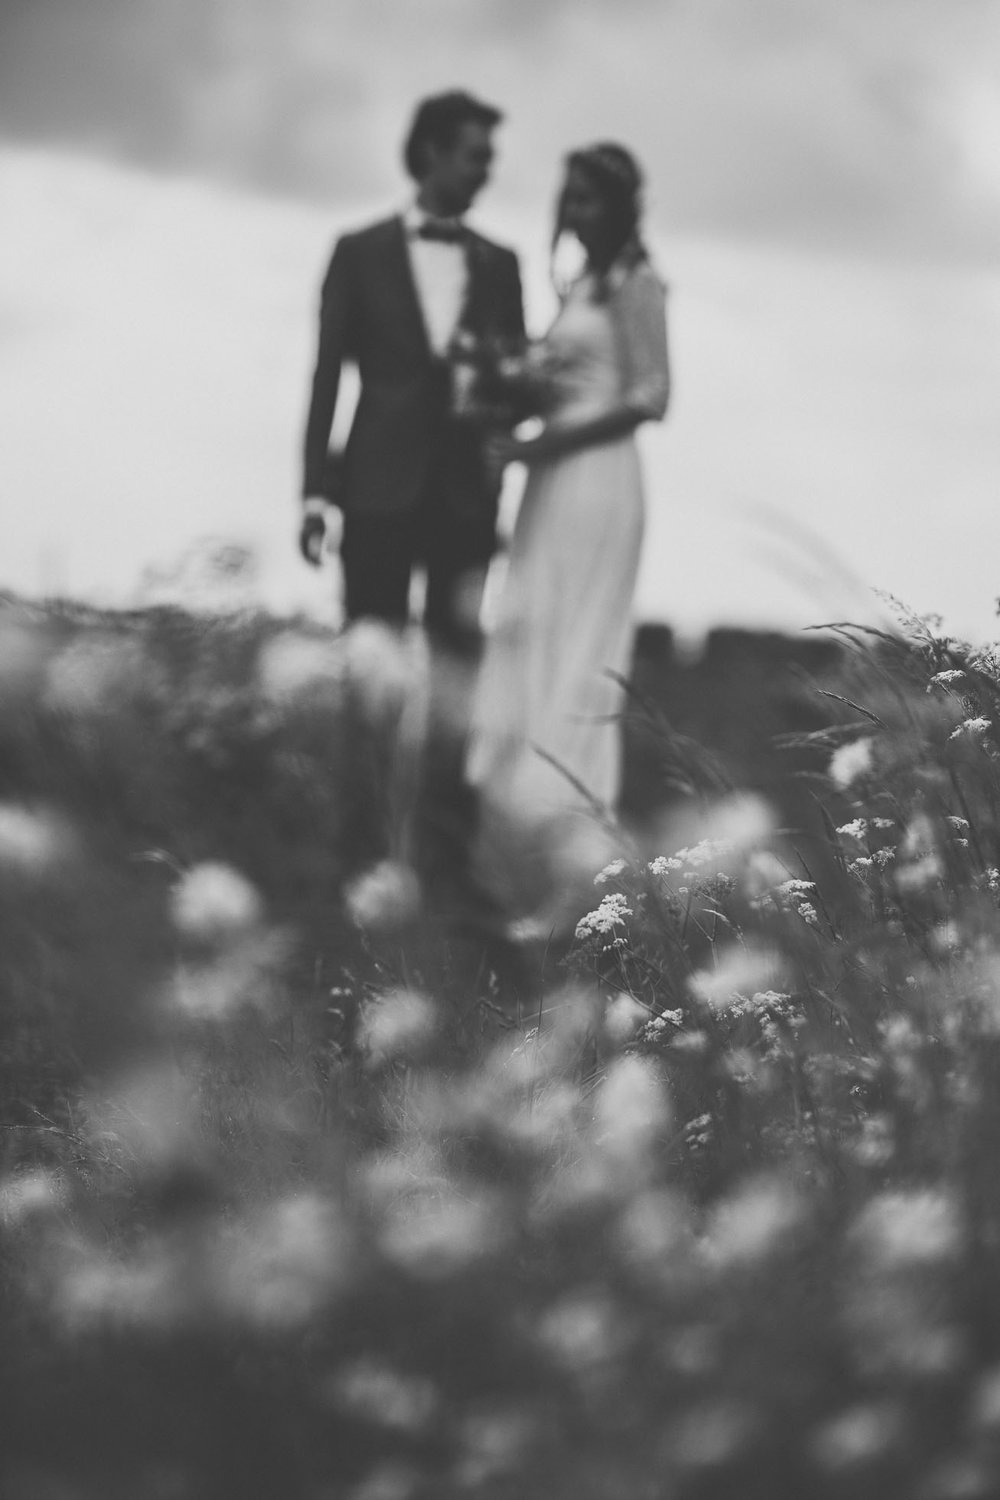 utrecht-wedding-photographer-31.jpg